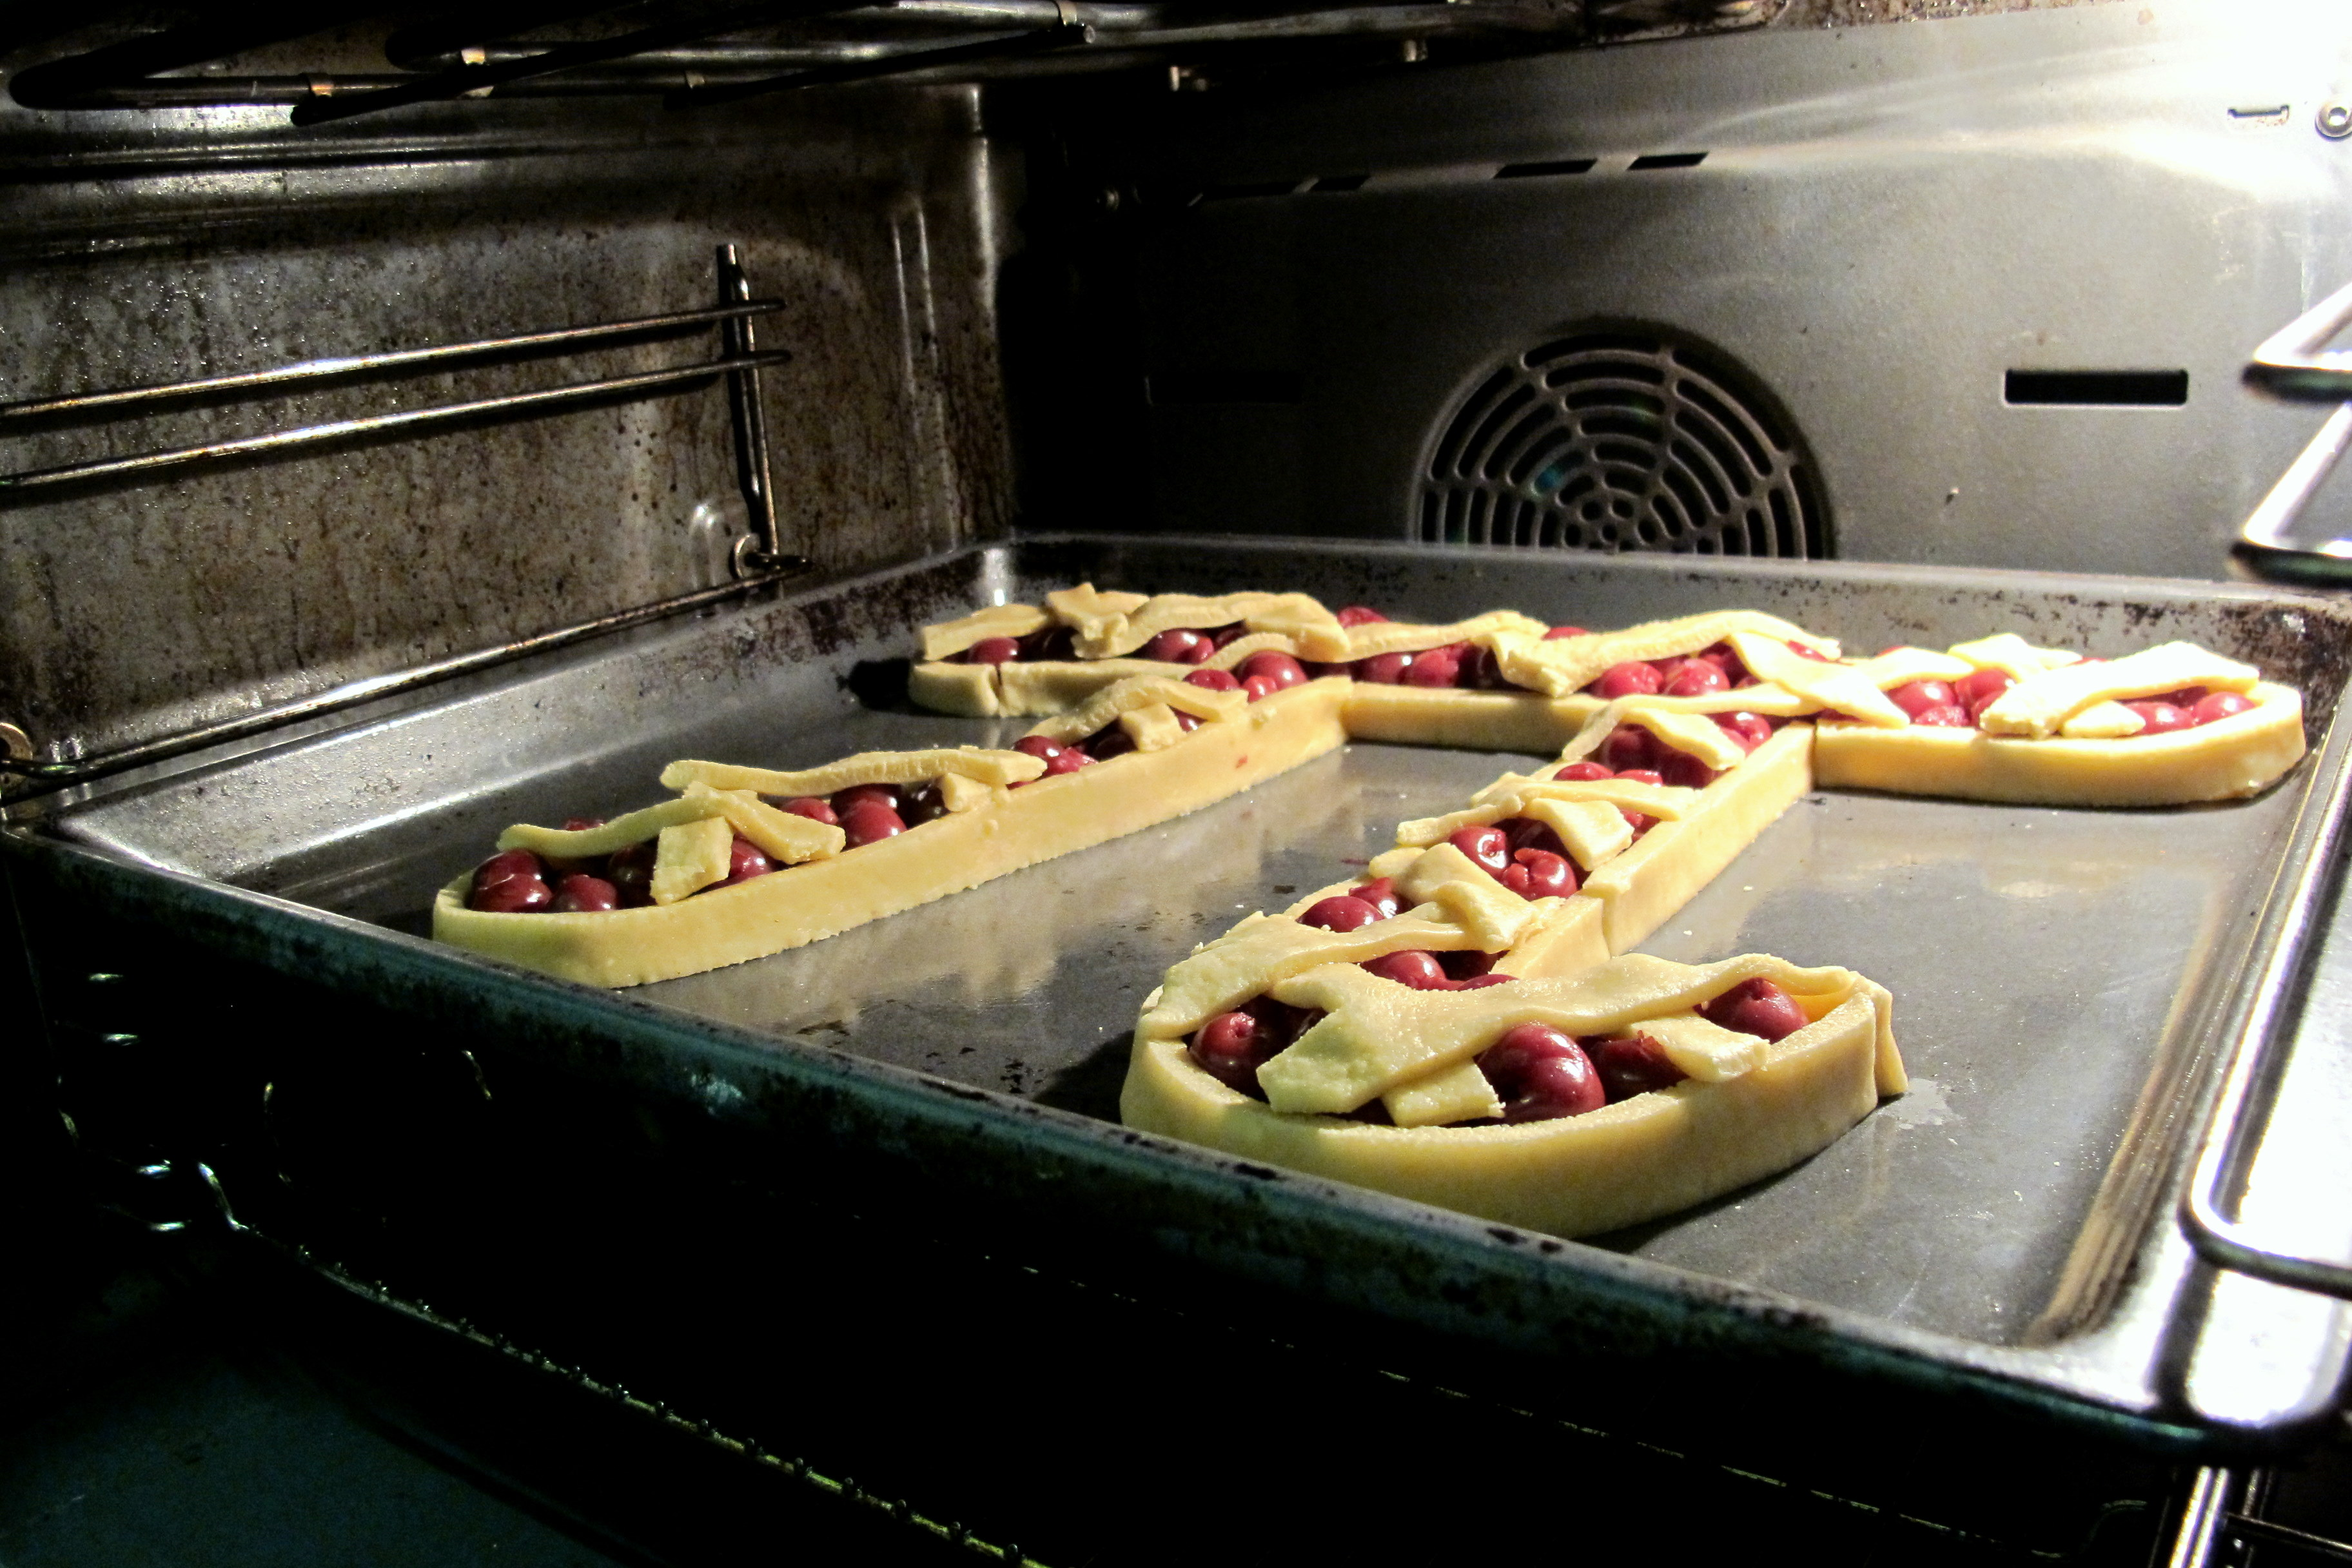 Picture of Bake the Maths in the Oven